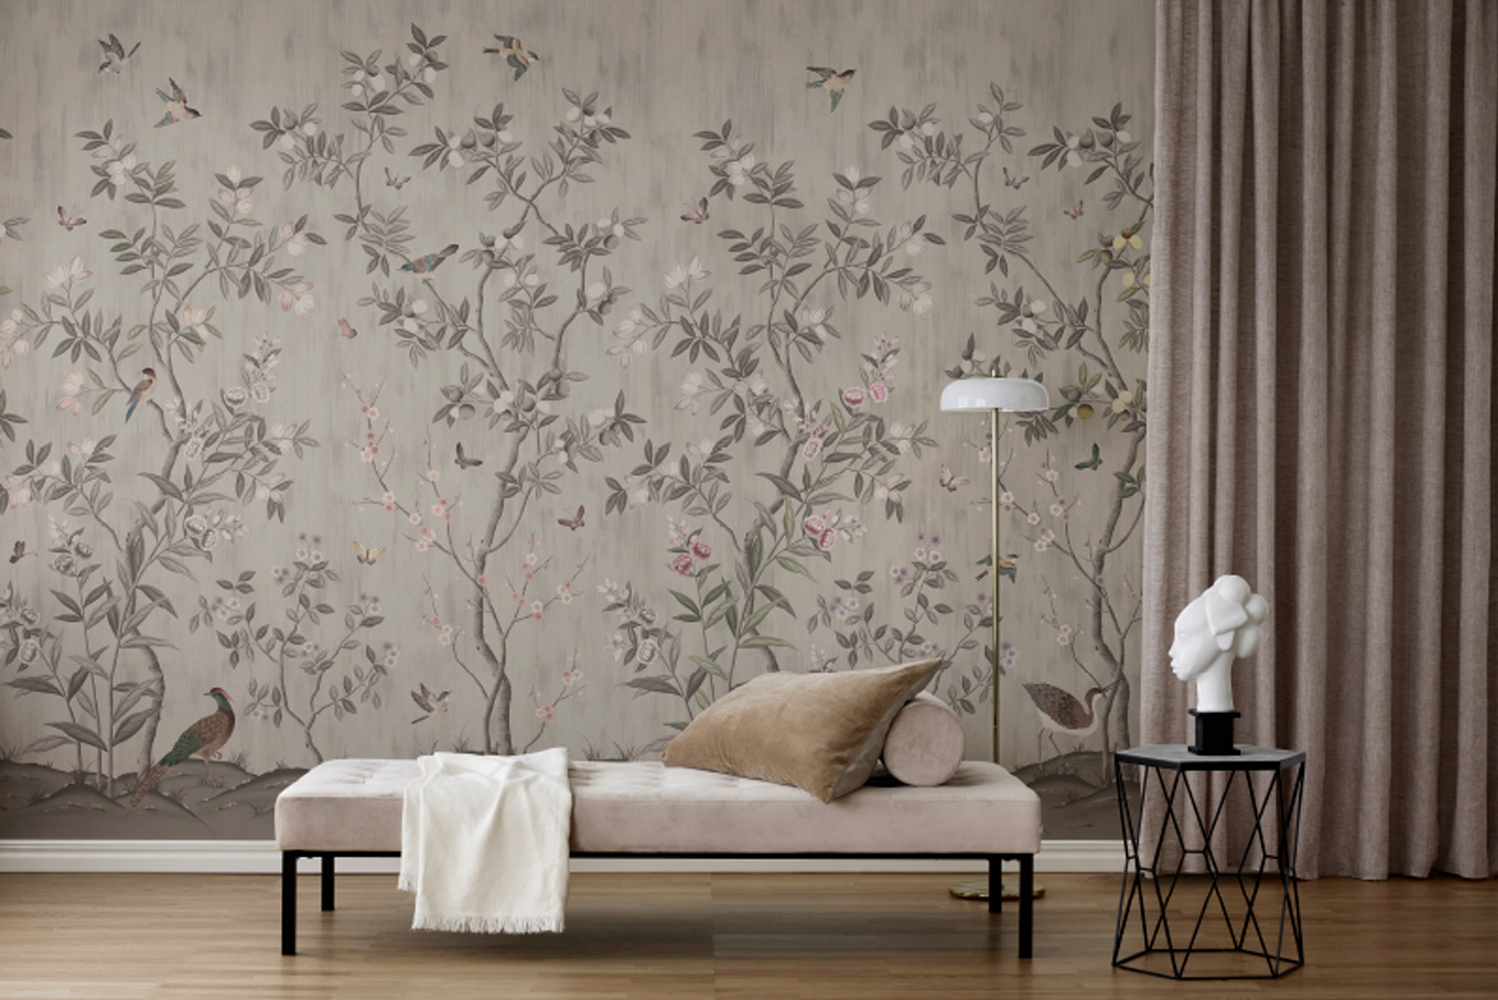 Introducing the La Chinoiserie collection by Rebel Walls.